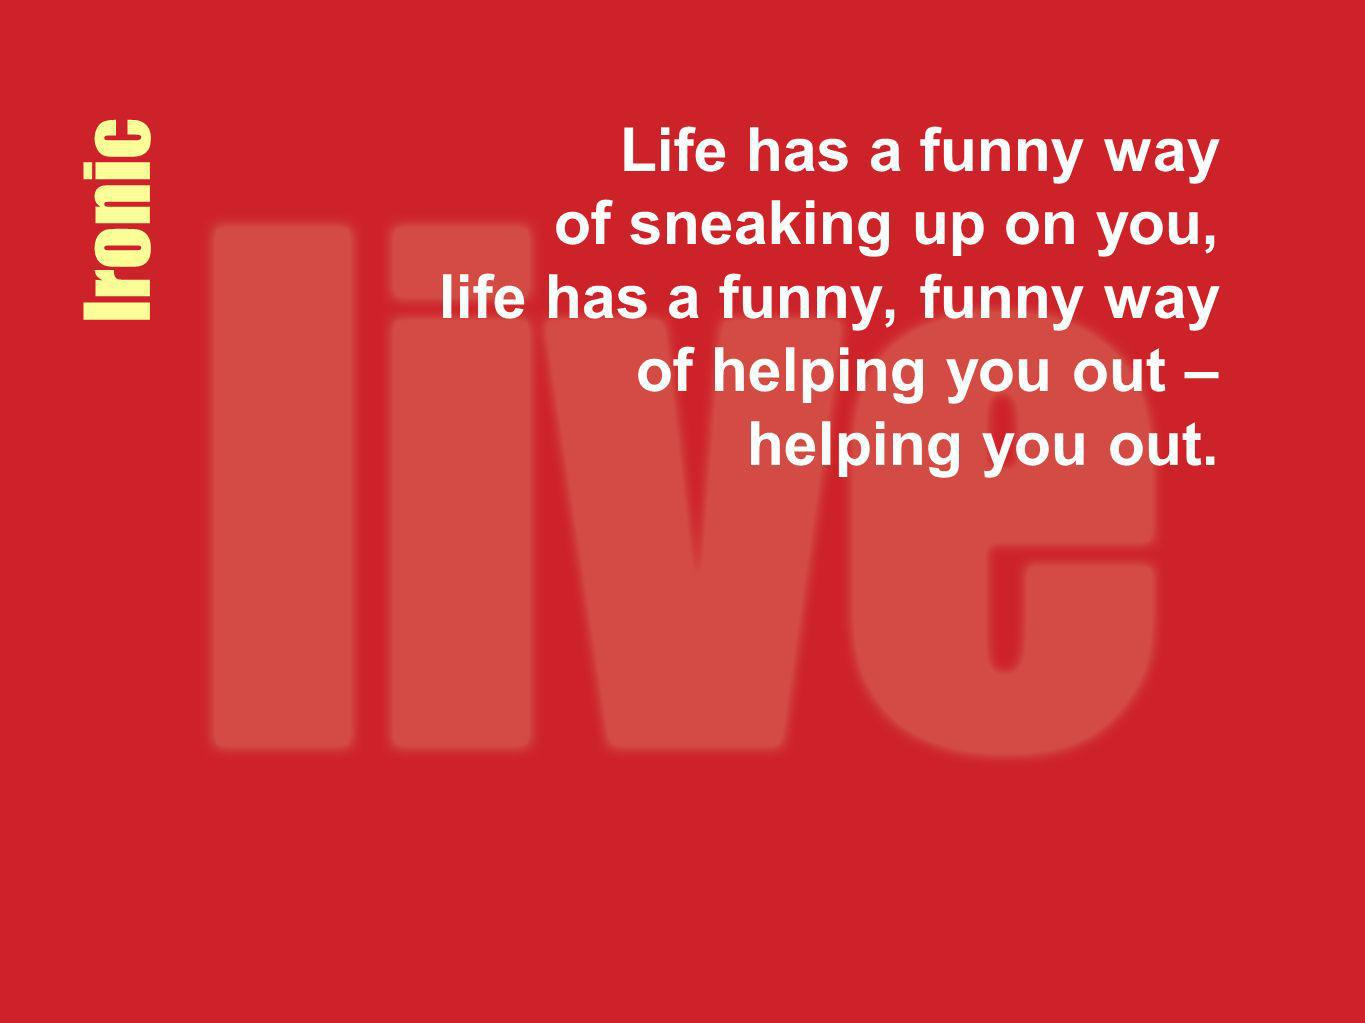 Ironic Life has a funny way of sneaking up on you, life has a funny, funny way of helping you out – helping you out.